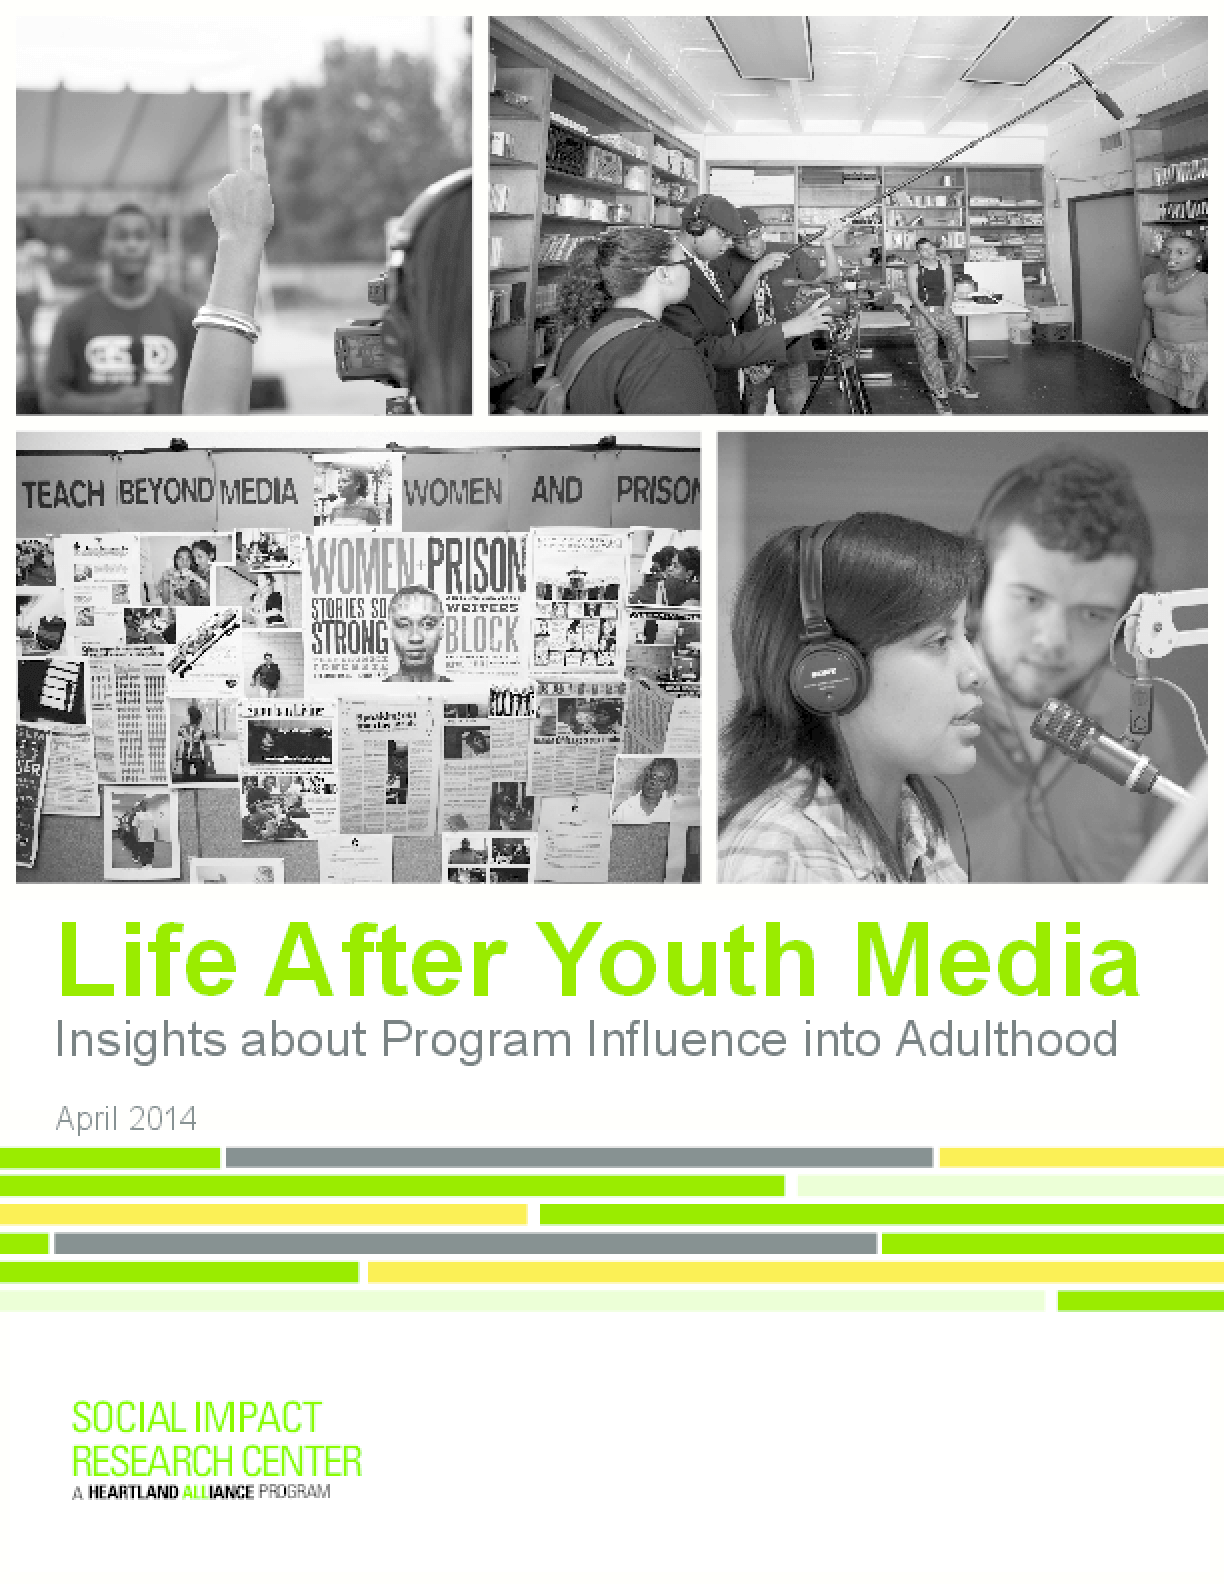 Life After Youth Media: Insights about Program Influence into Adulthood